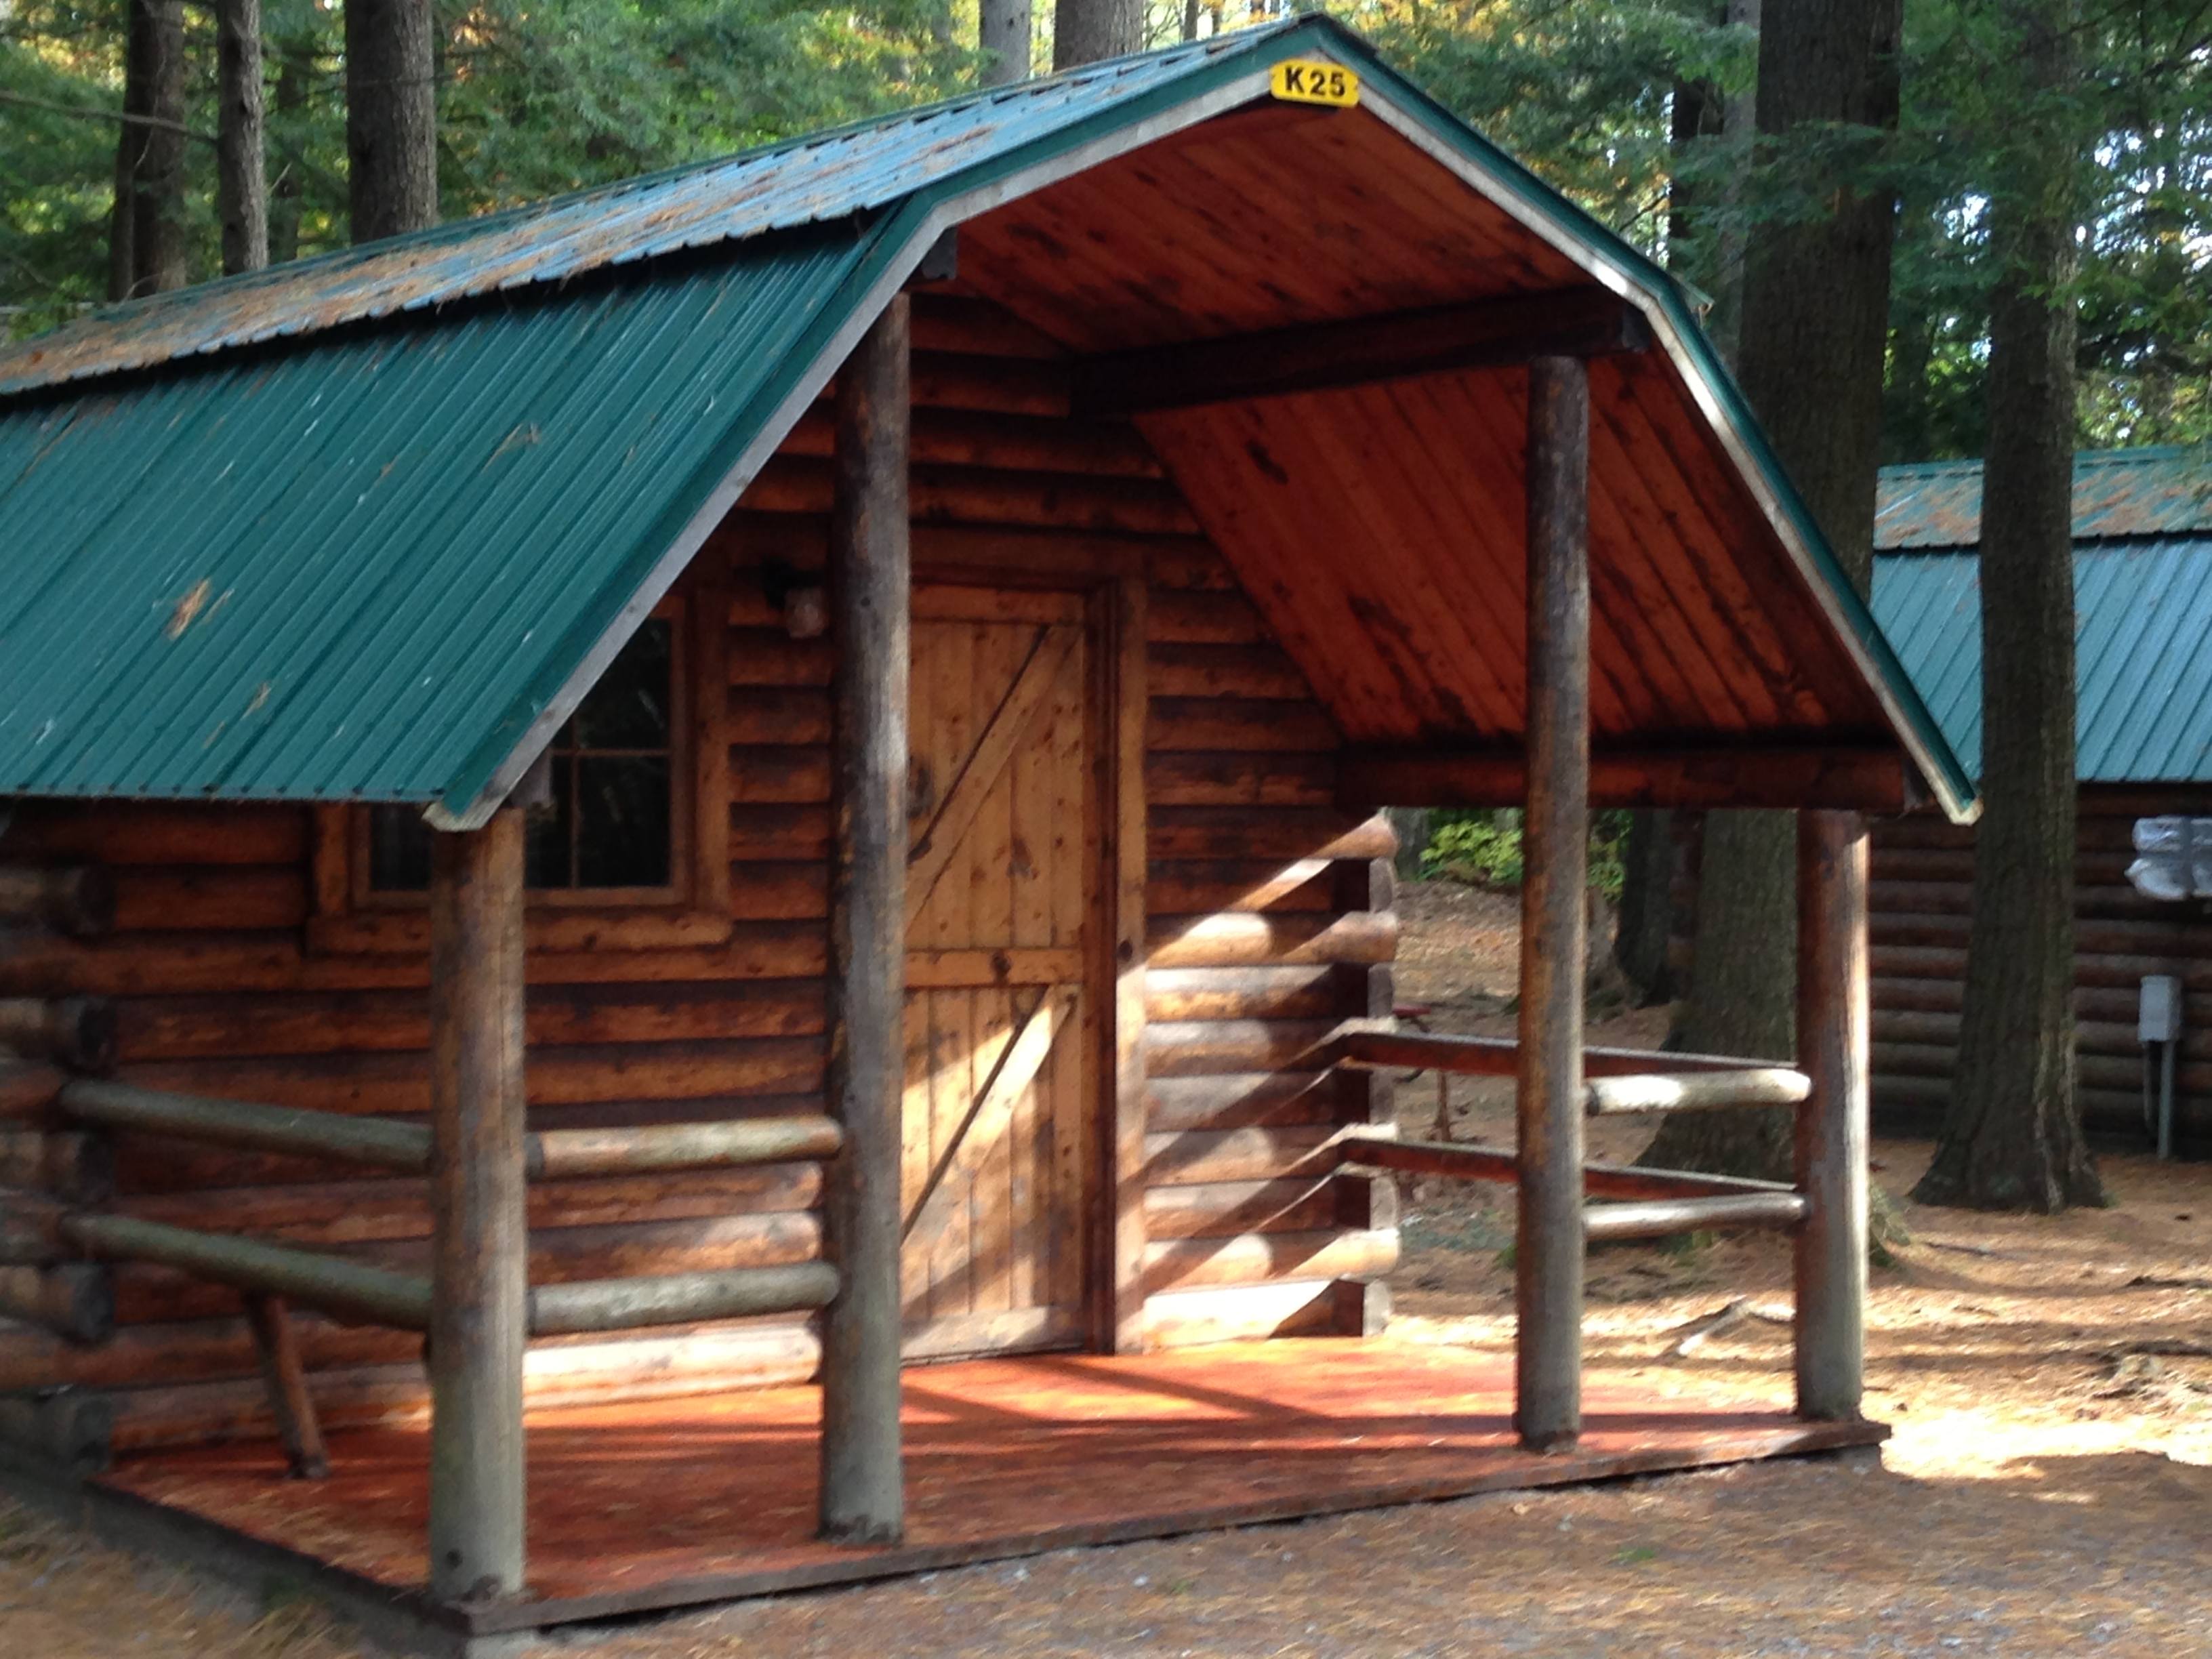 heart in summer rentals bay cabins lodges lake vacation img cottages on george